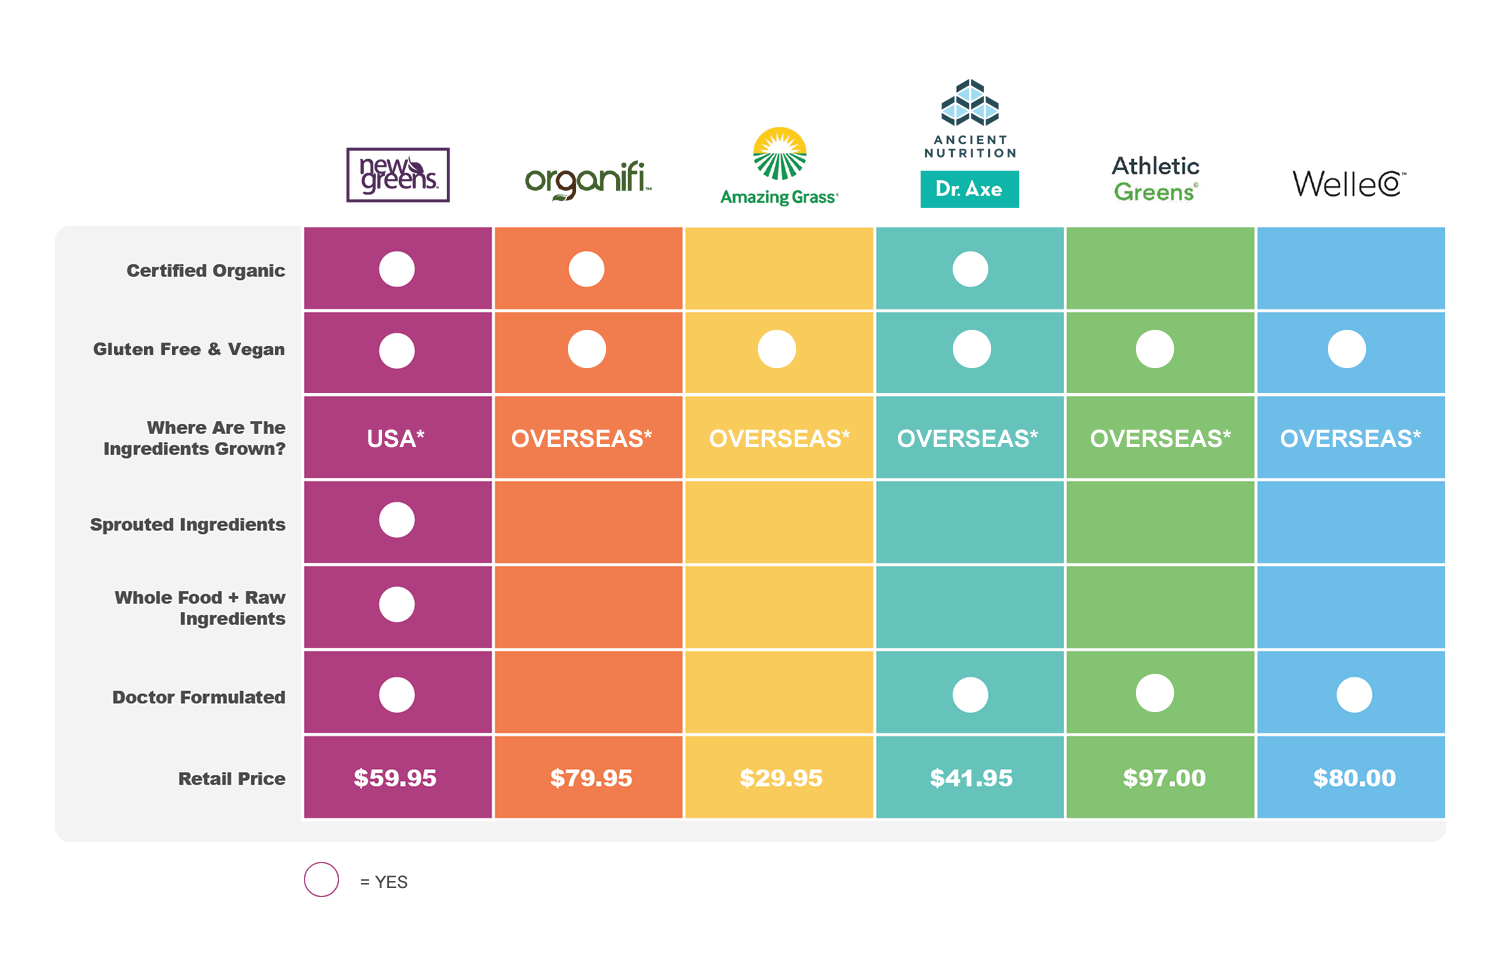 Compare NewGreens to other brands